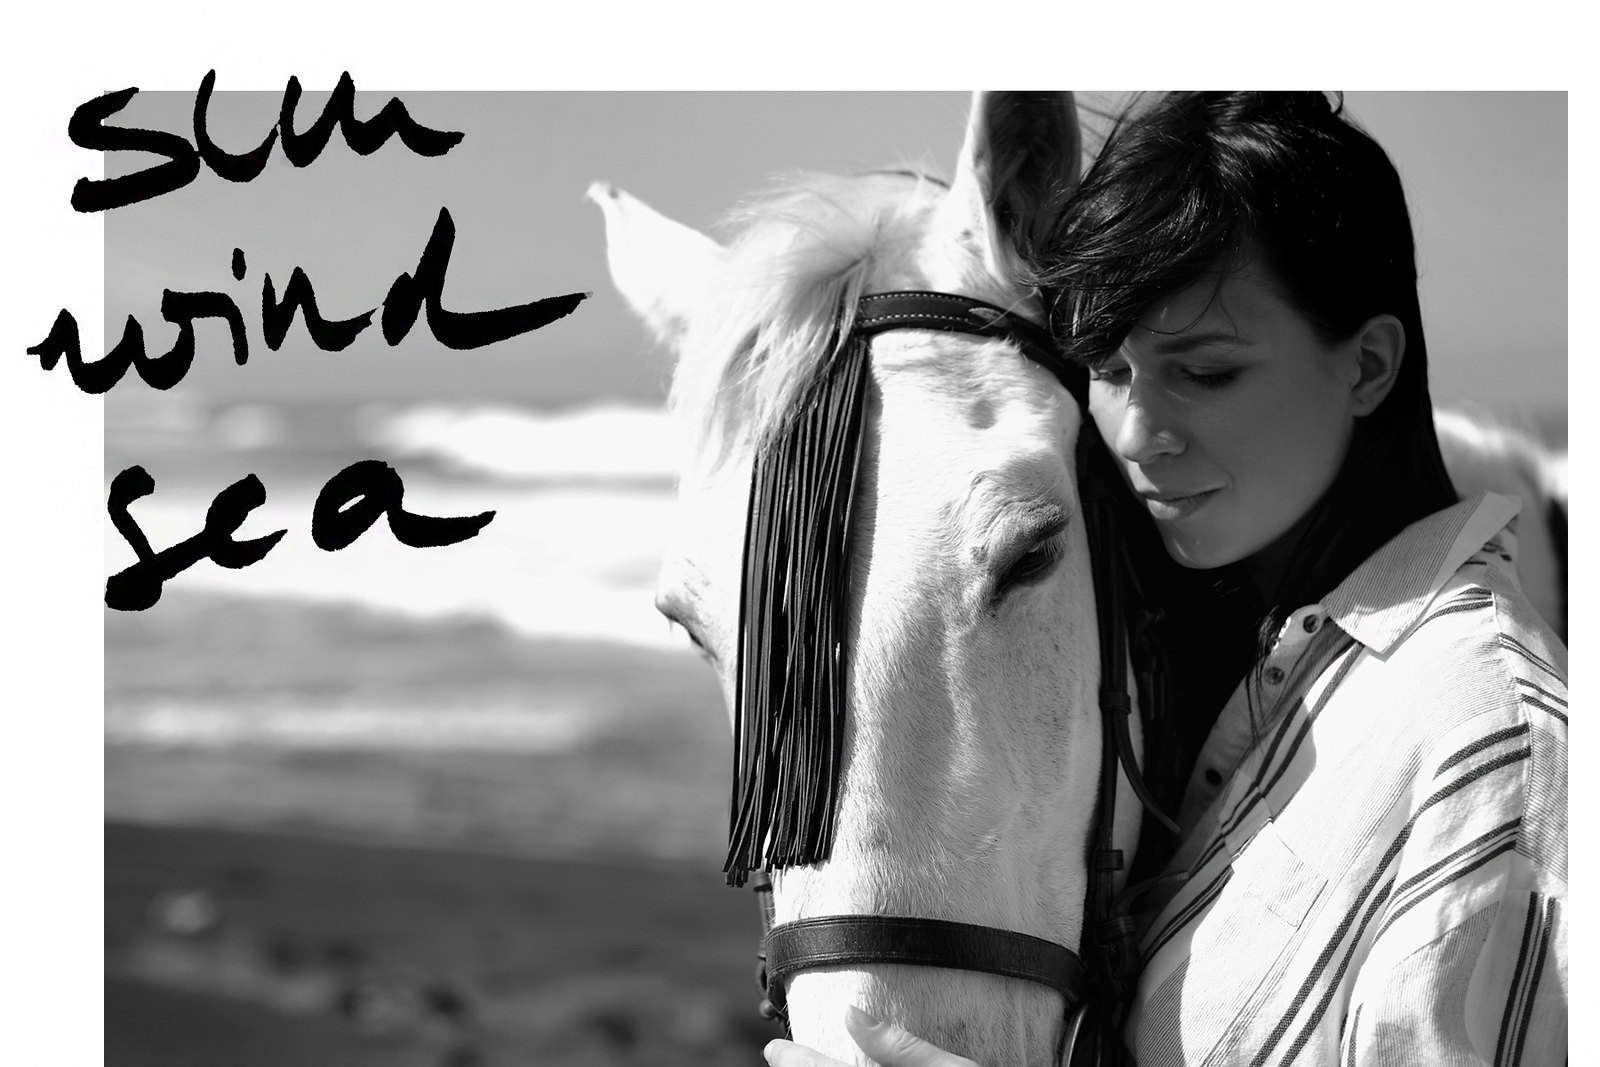 riding fuerte fuerteventura horse white reiten ausritt beach water ocean waves wild freedom happiness vila stripe blouse levi's jeans girl dreaming cats & dogs fashionblog modeblogger ricarda schernus berlin styleblog deutschland 5